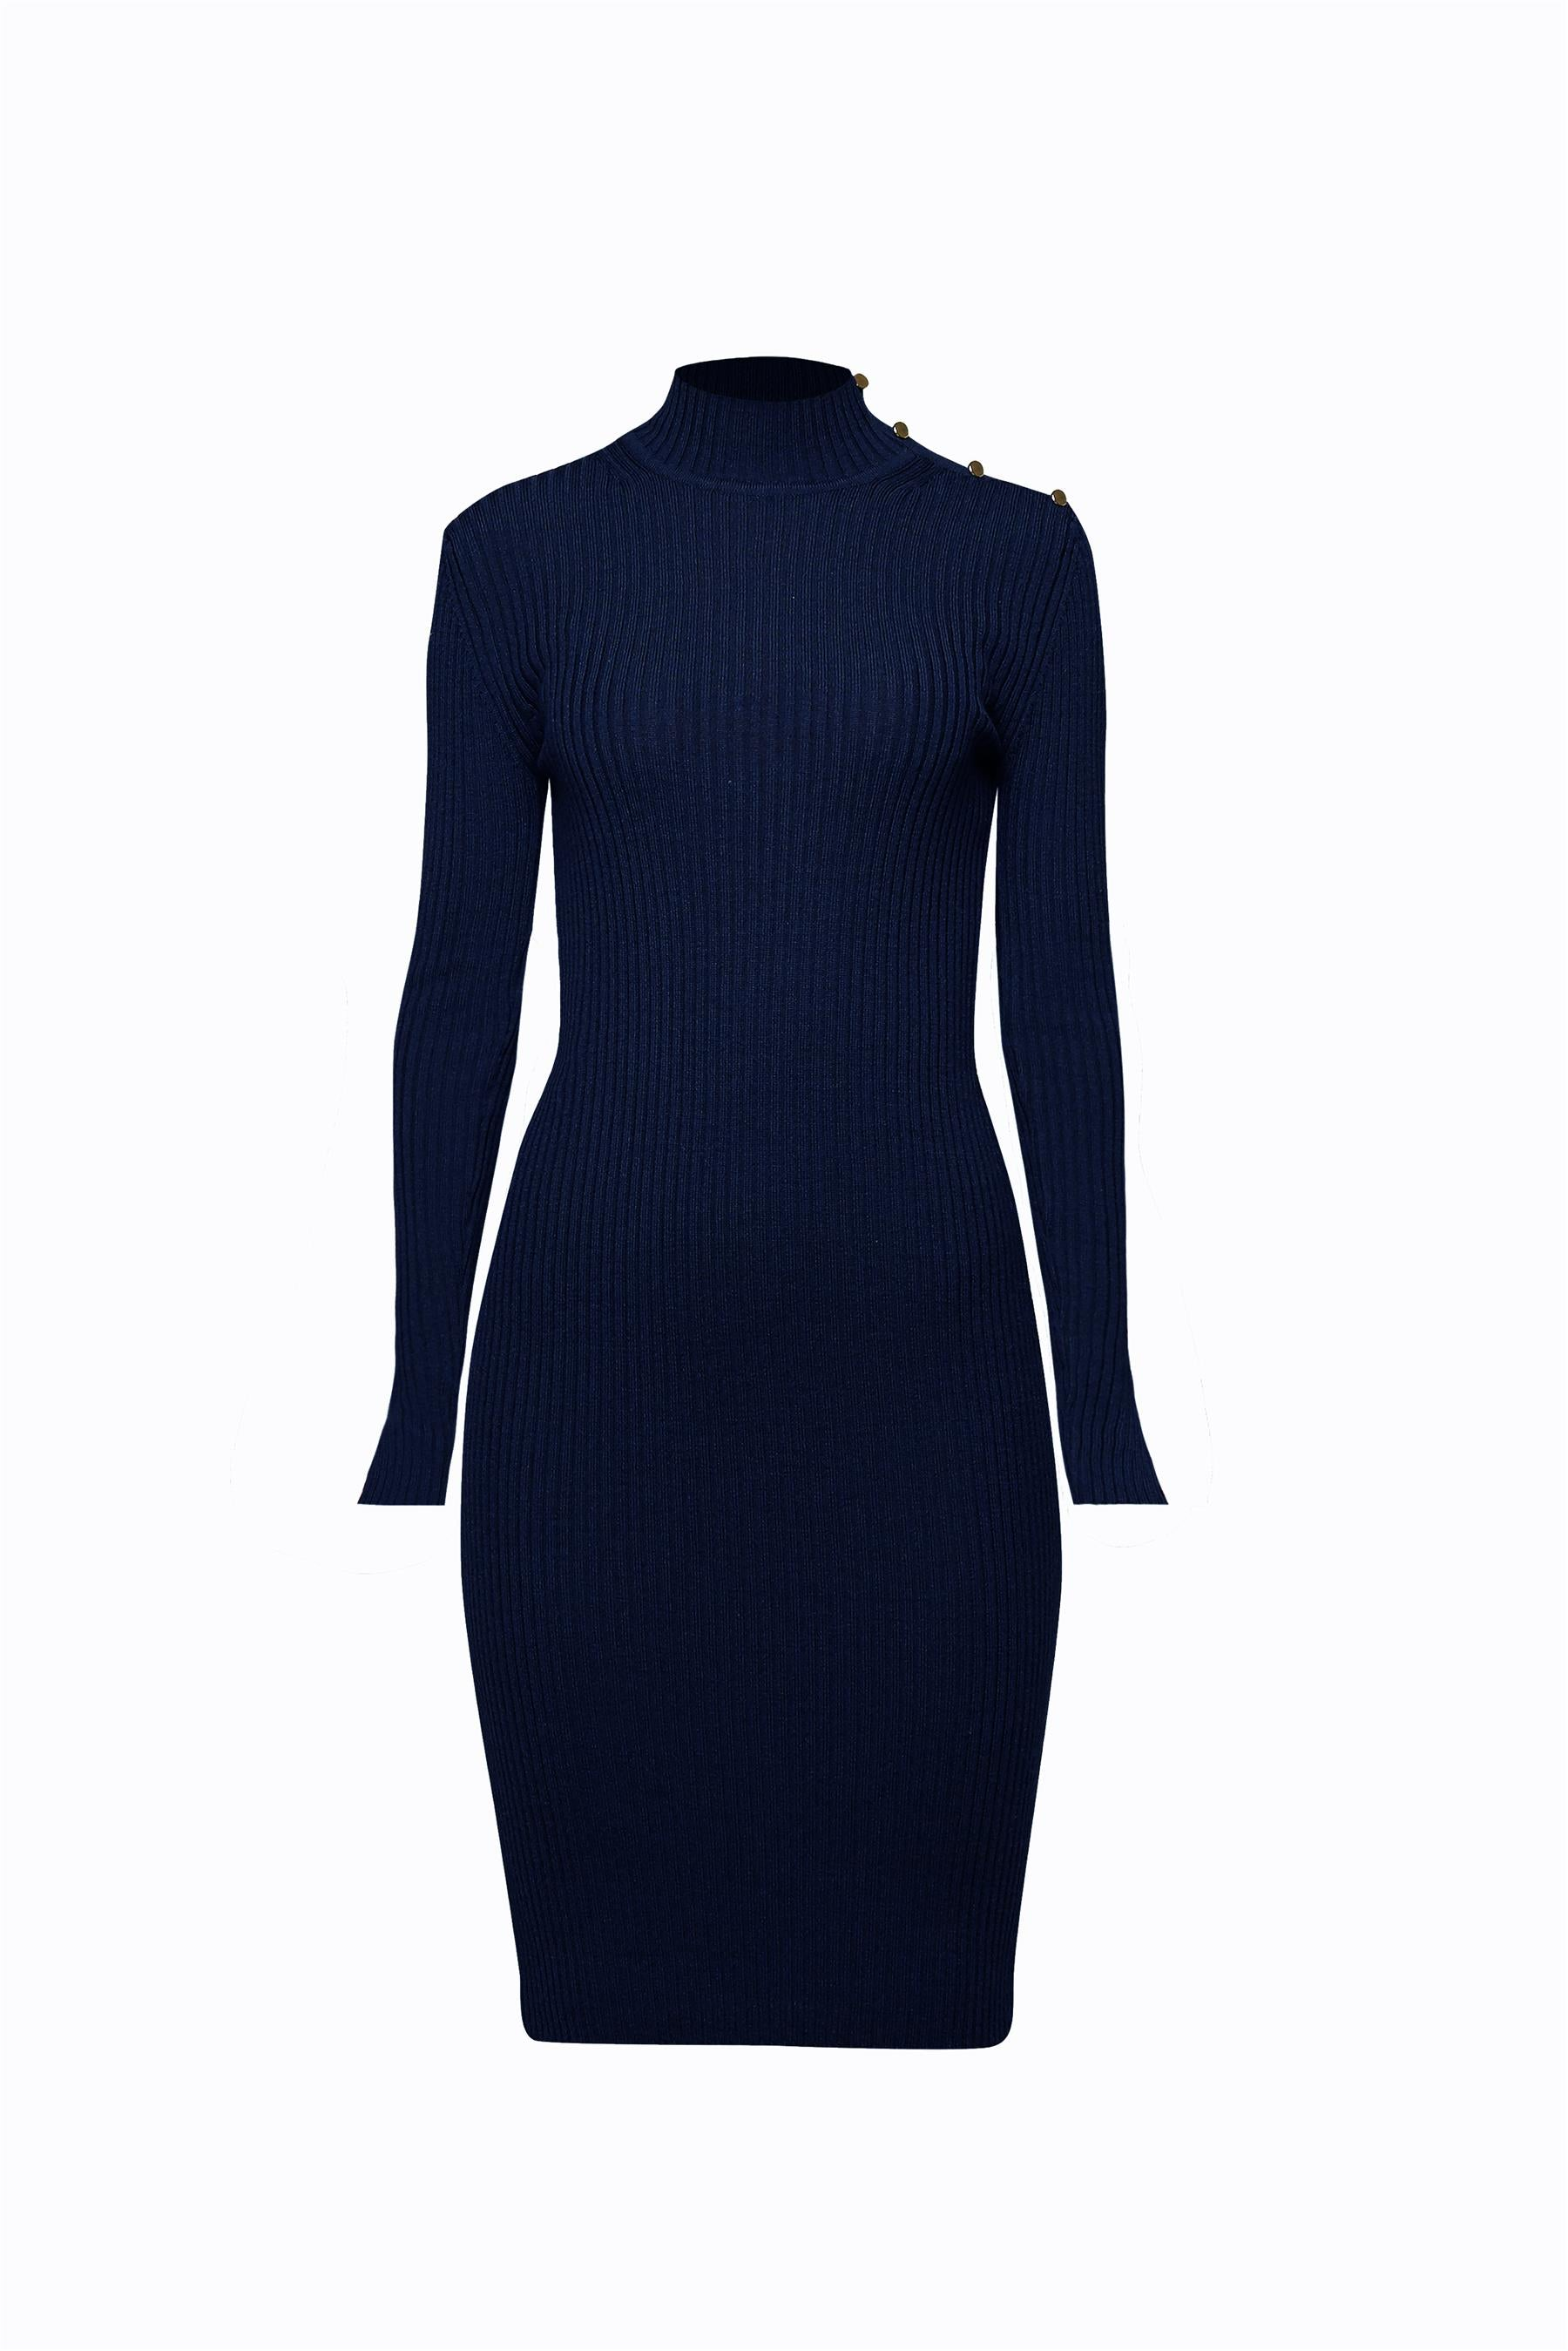 Ribbed wool midi dress in Midnight Blue